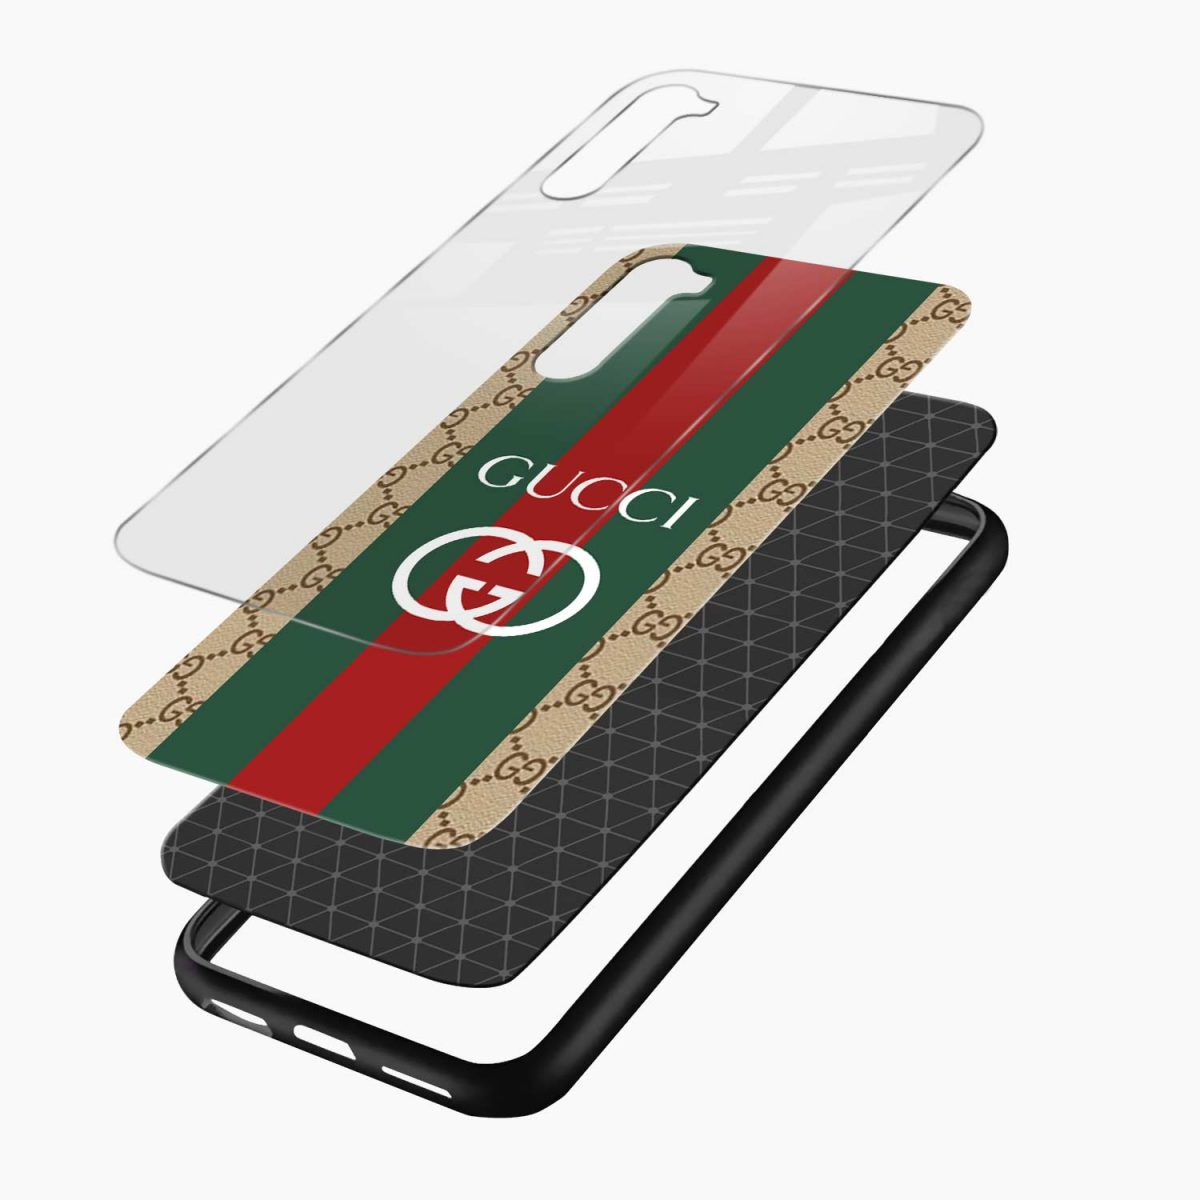 gucci strips pattern layers view oneplus nord back cover